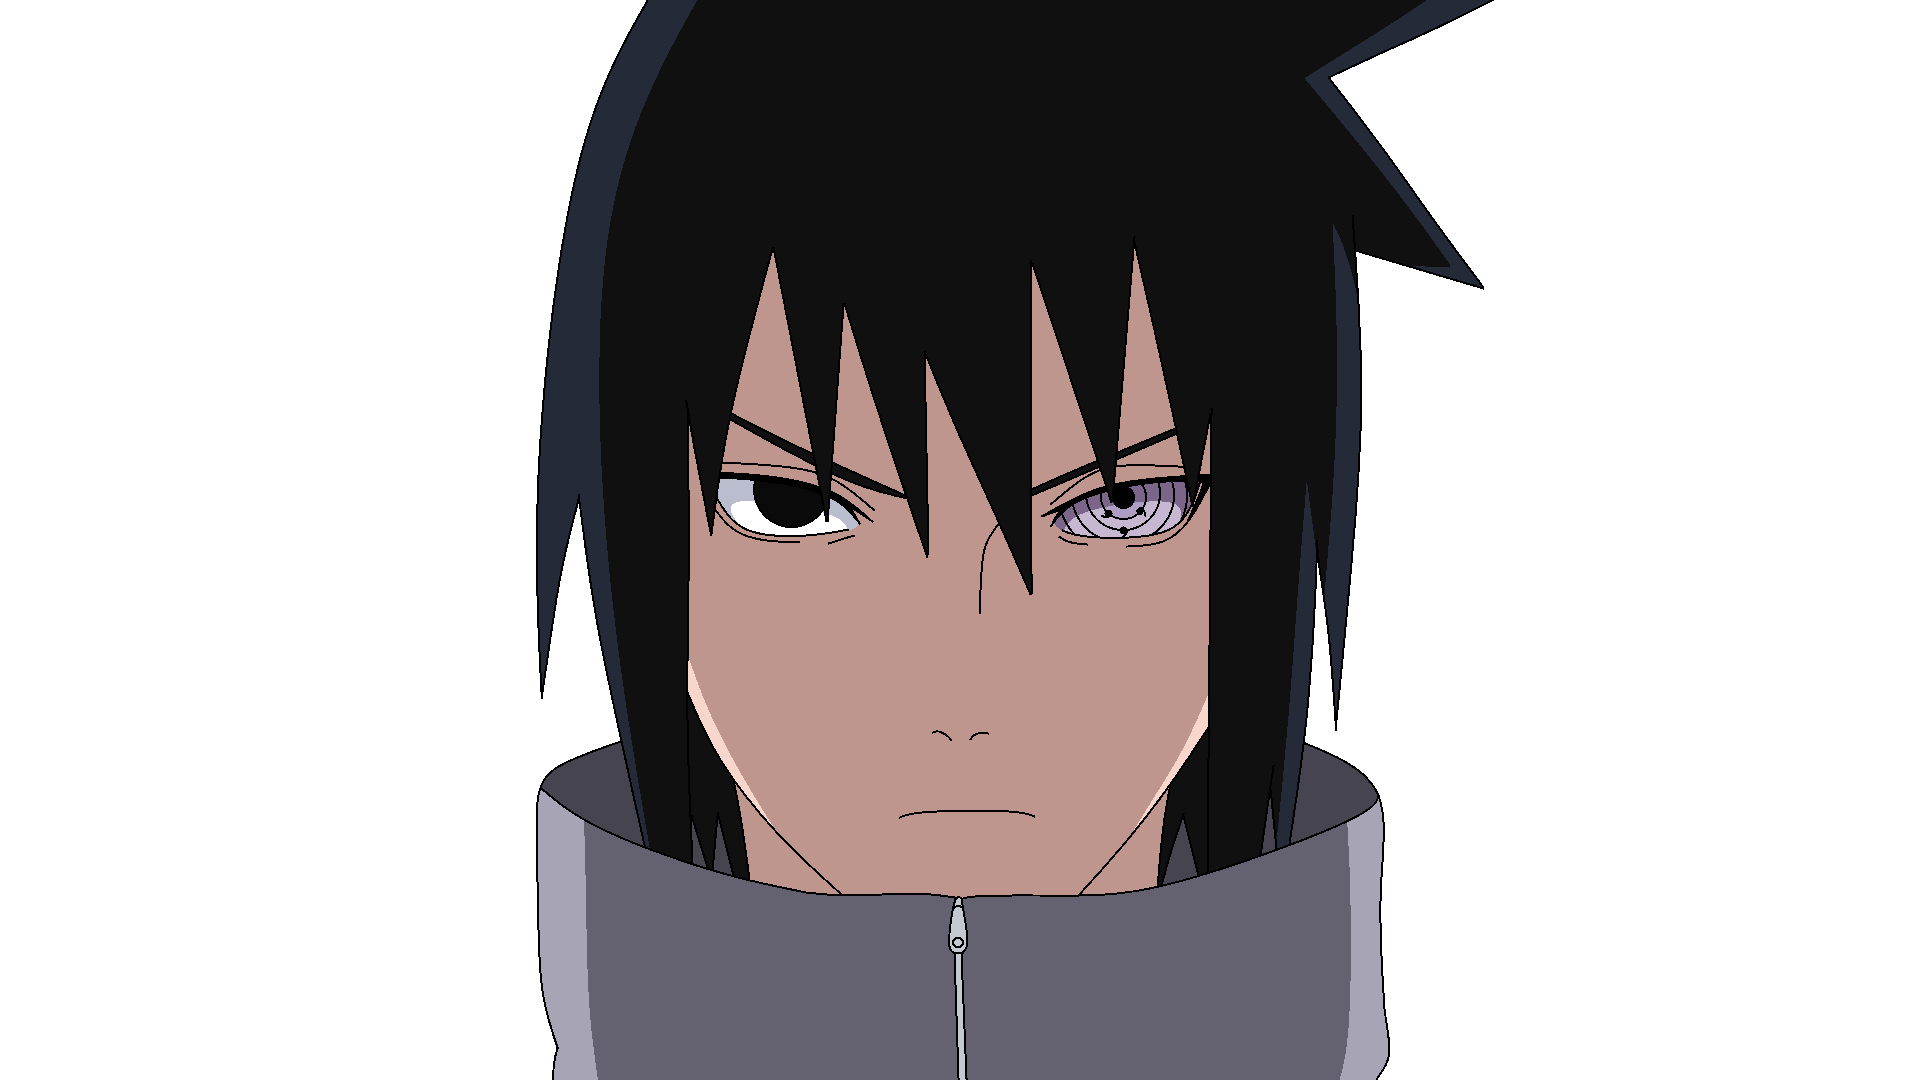 Anime Wallpaper Sasuke Uchiha Rinnegan Iphone With HD